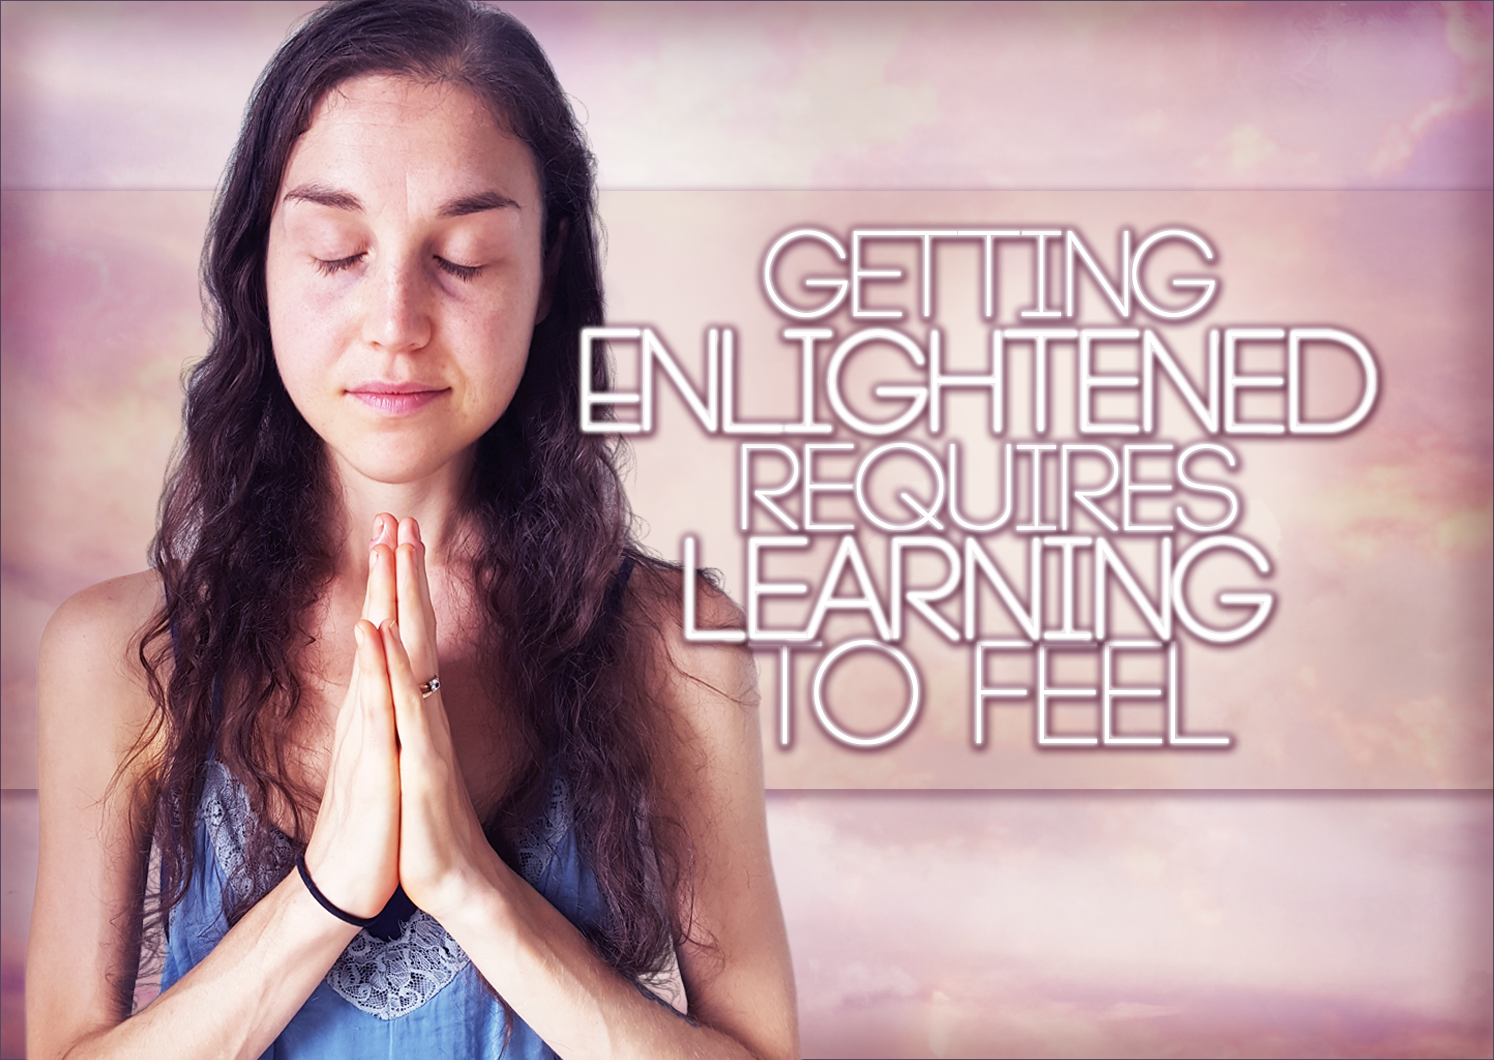 Getting Enlightened Requires Learning To FEEL